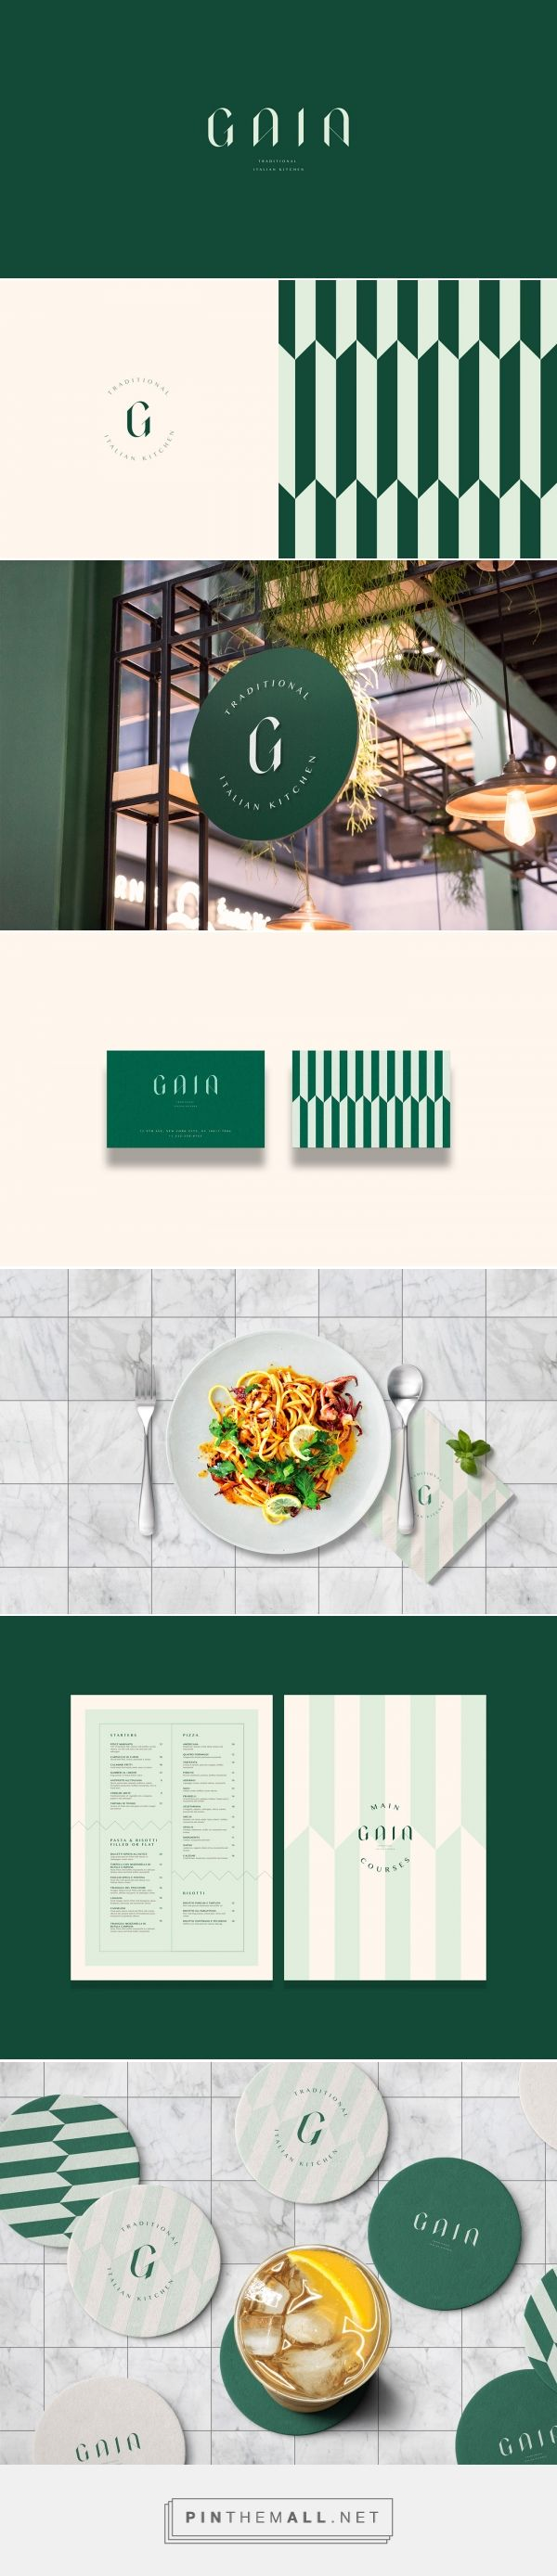 Gaia Traditional Italian Restaurant Branding and Menu Design by Marka Network | Fivestar Branding Agency – Design and Branding Agency & Curated Inspiration Gallery